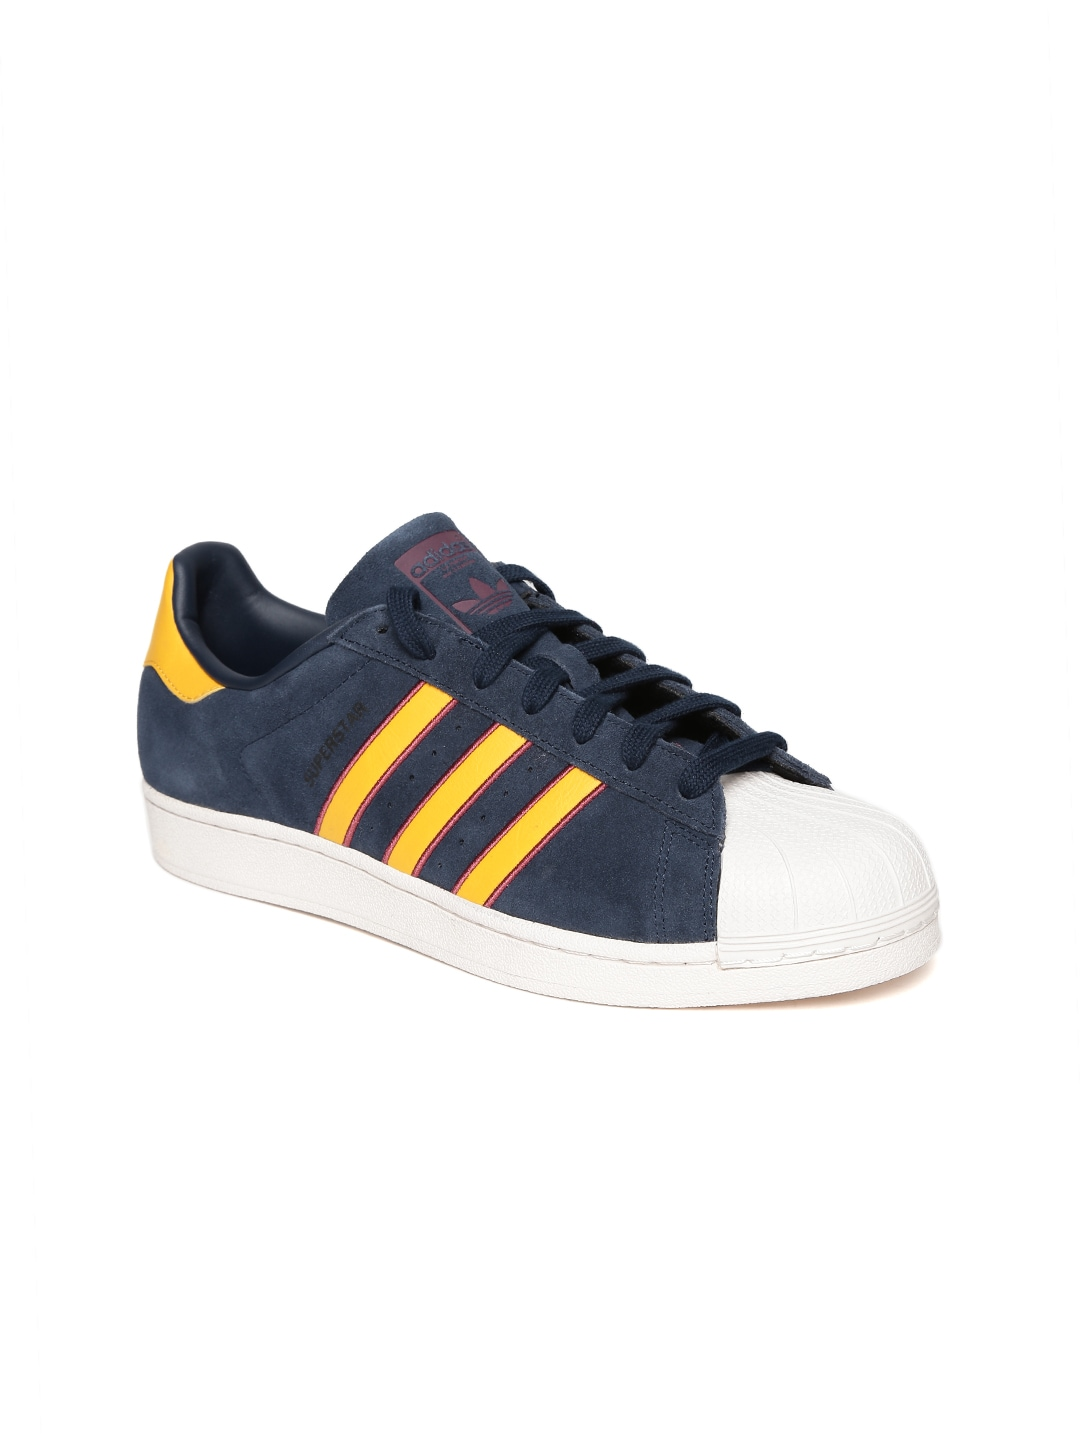 56fe40701cb Adidas Superstar Shoes - Buy Adidas Superstar Shoes Online - Myntra